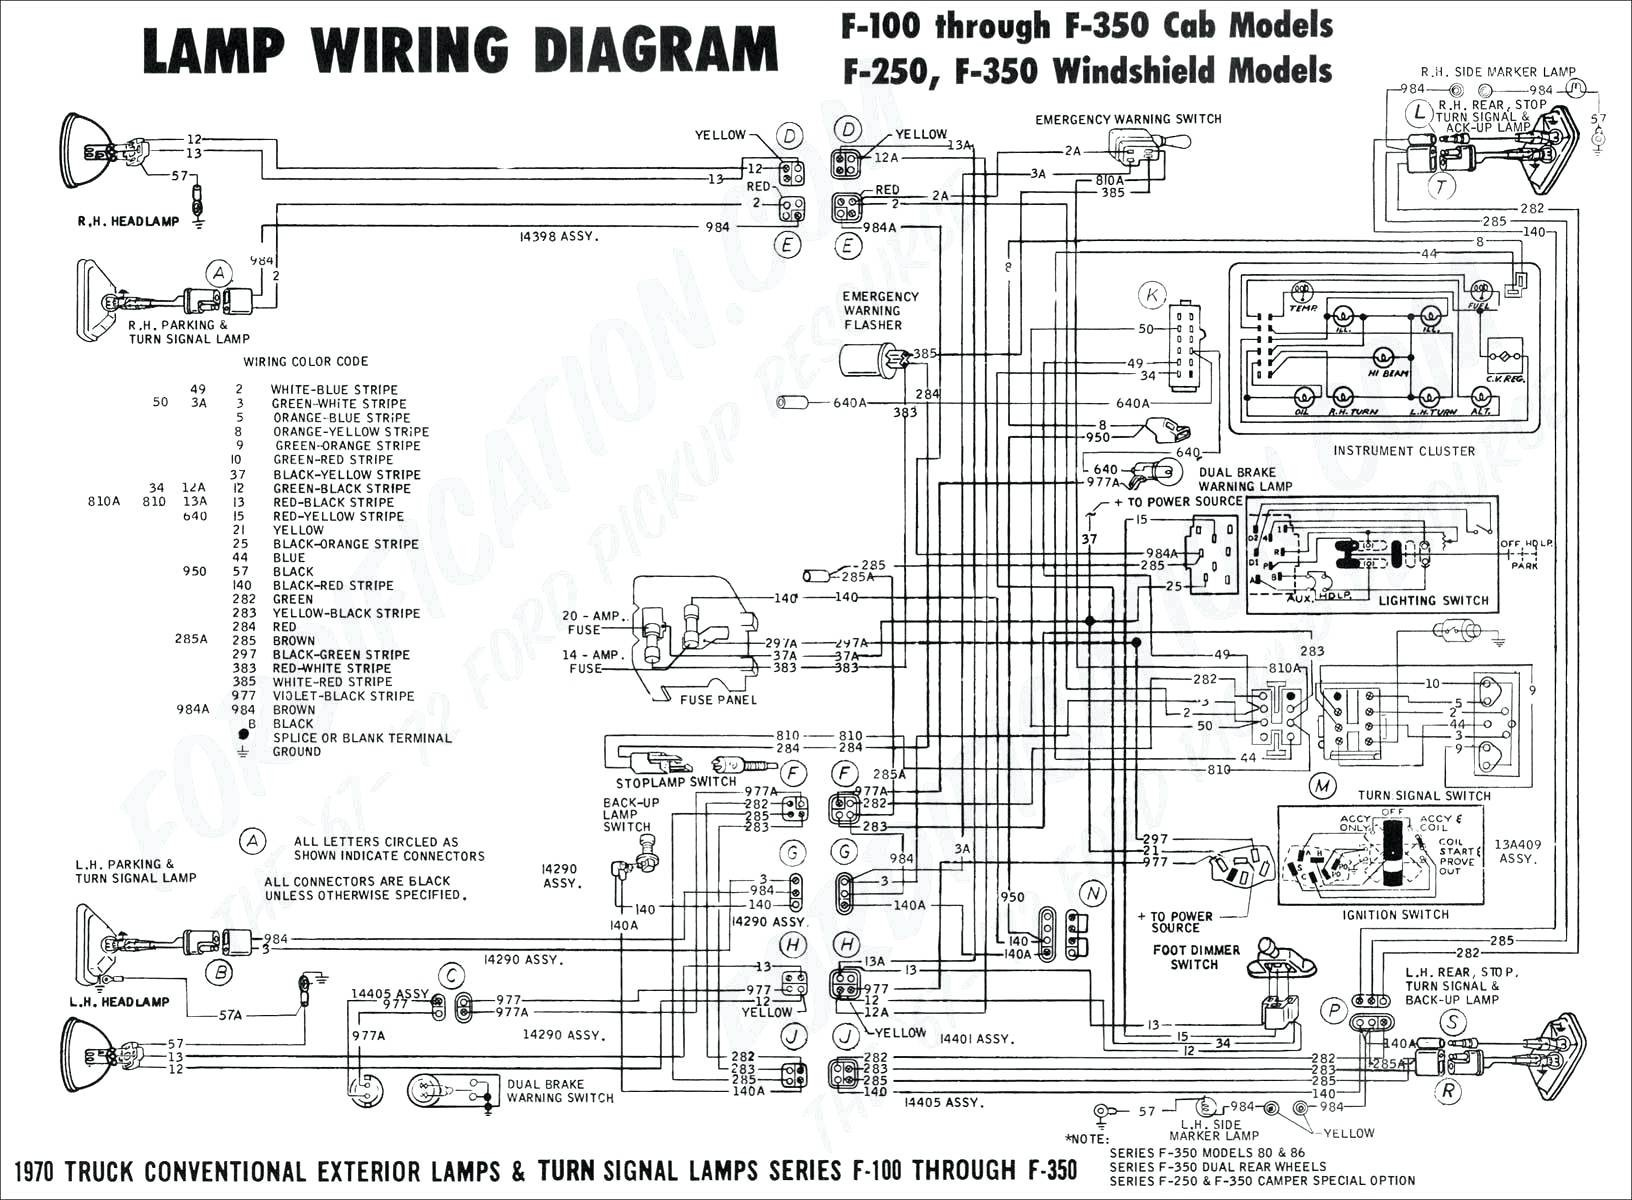 Toyota 5k Engine Diagram Mustang Tps Wiring Diagram Worksheet and Wiring Diagram • Of Toyota 5k Engine Diagram